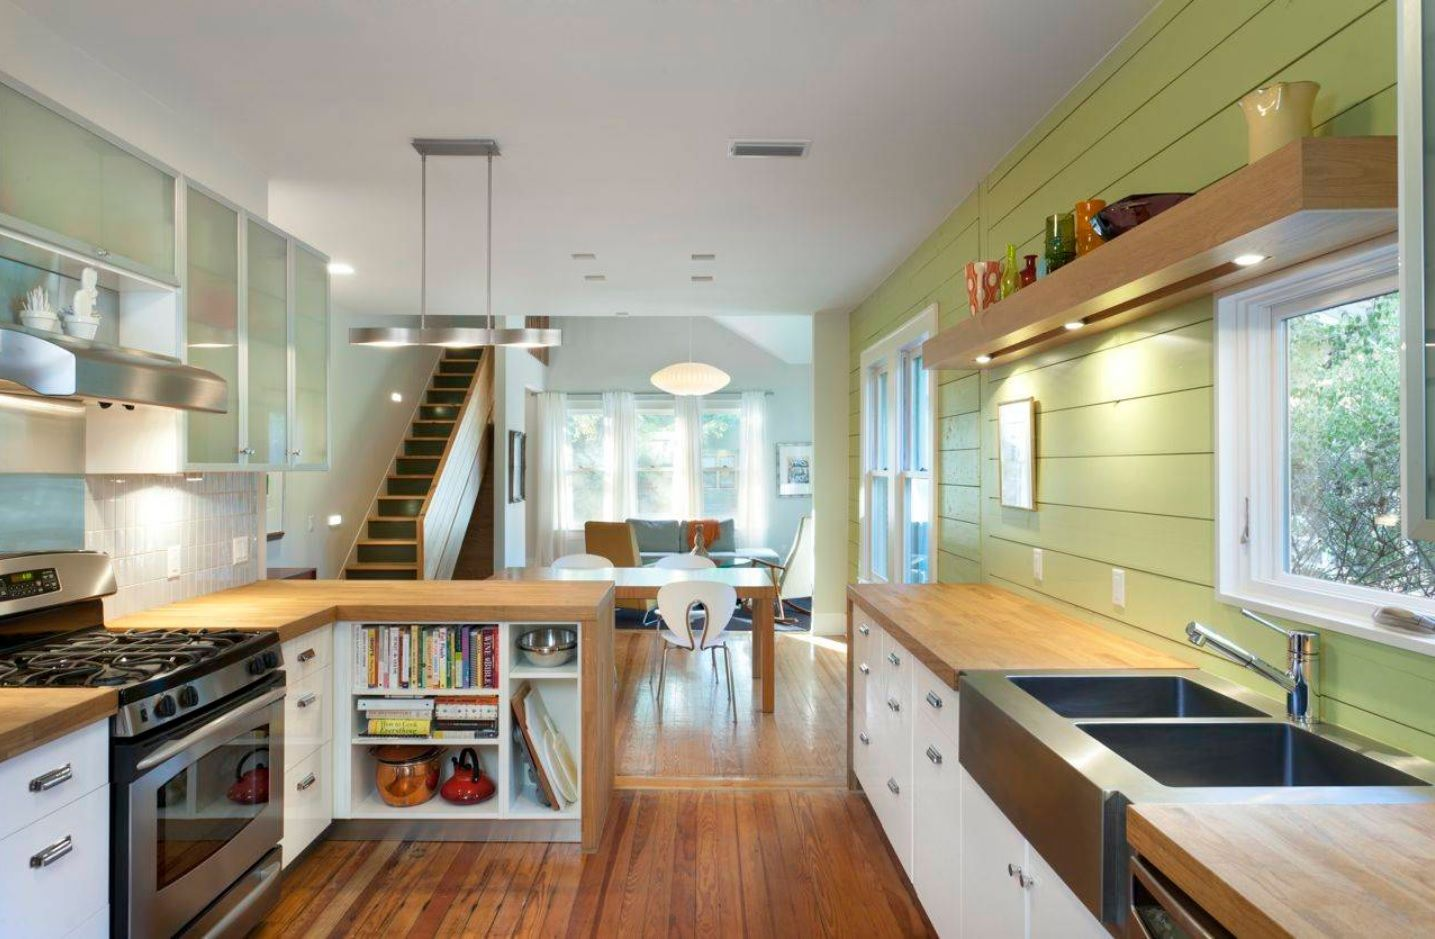 Butcher Block Countertop in Modern Kitchen Interior. open layout cottage soace in Modern style